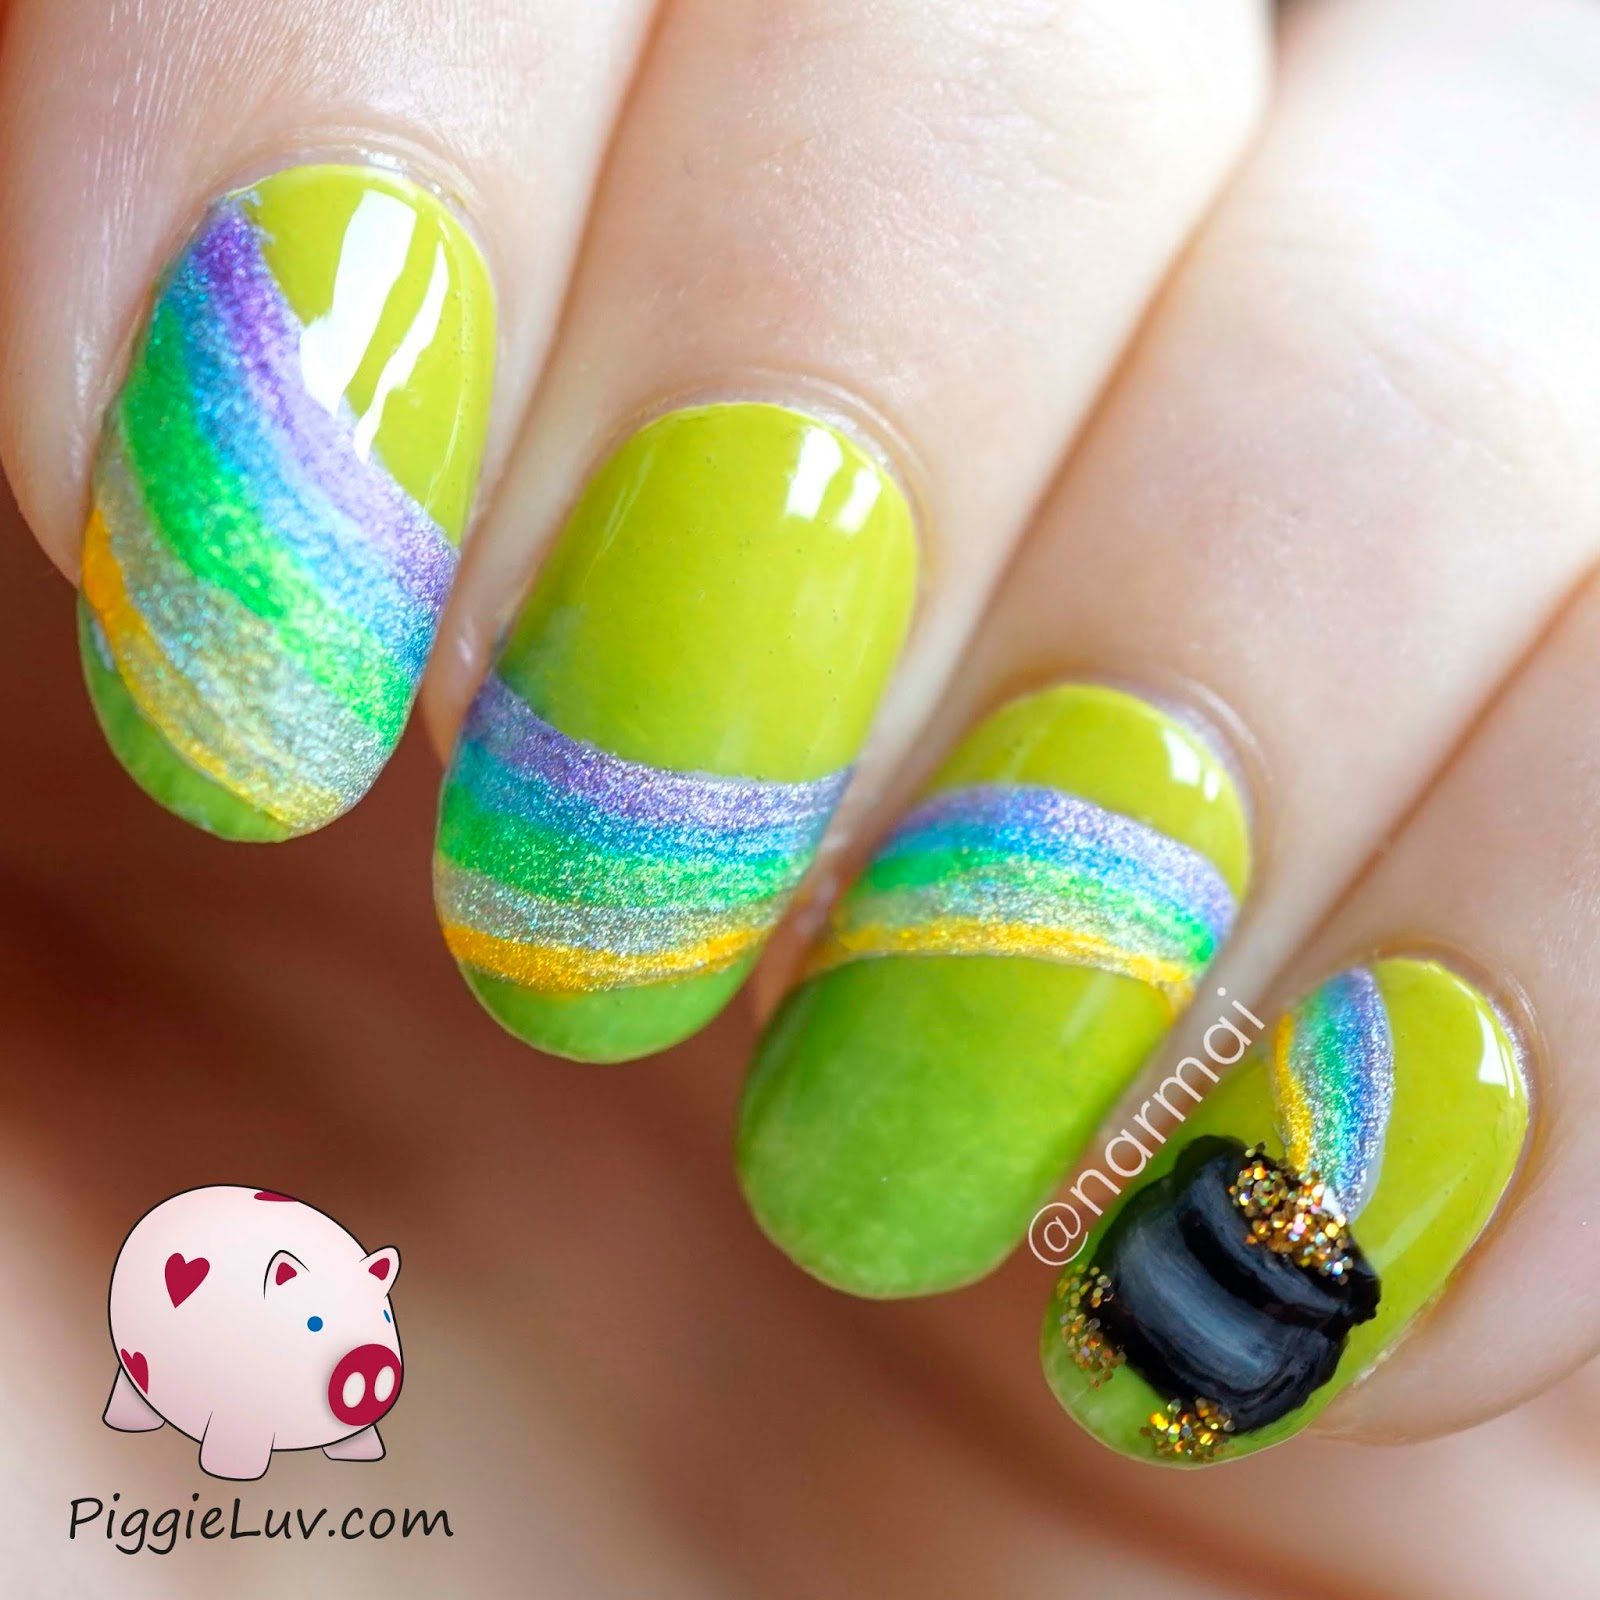 Piggieluv St Patricks Day Nail Art Hpb Linkup